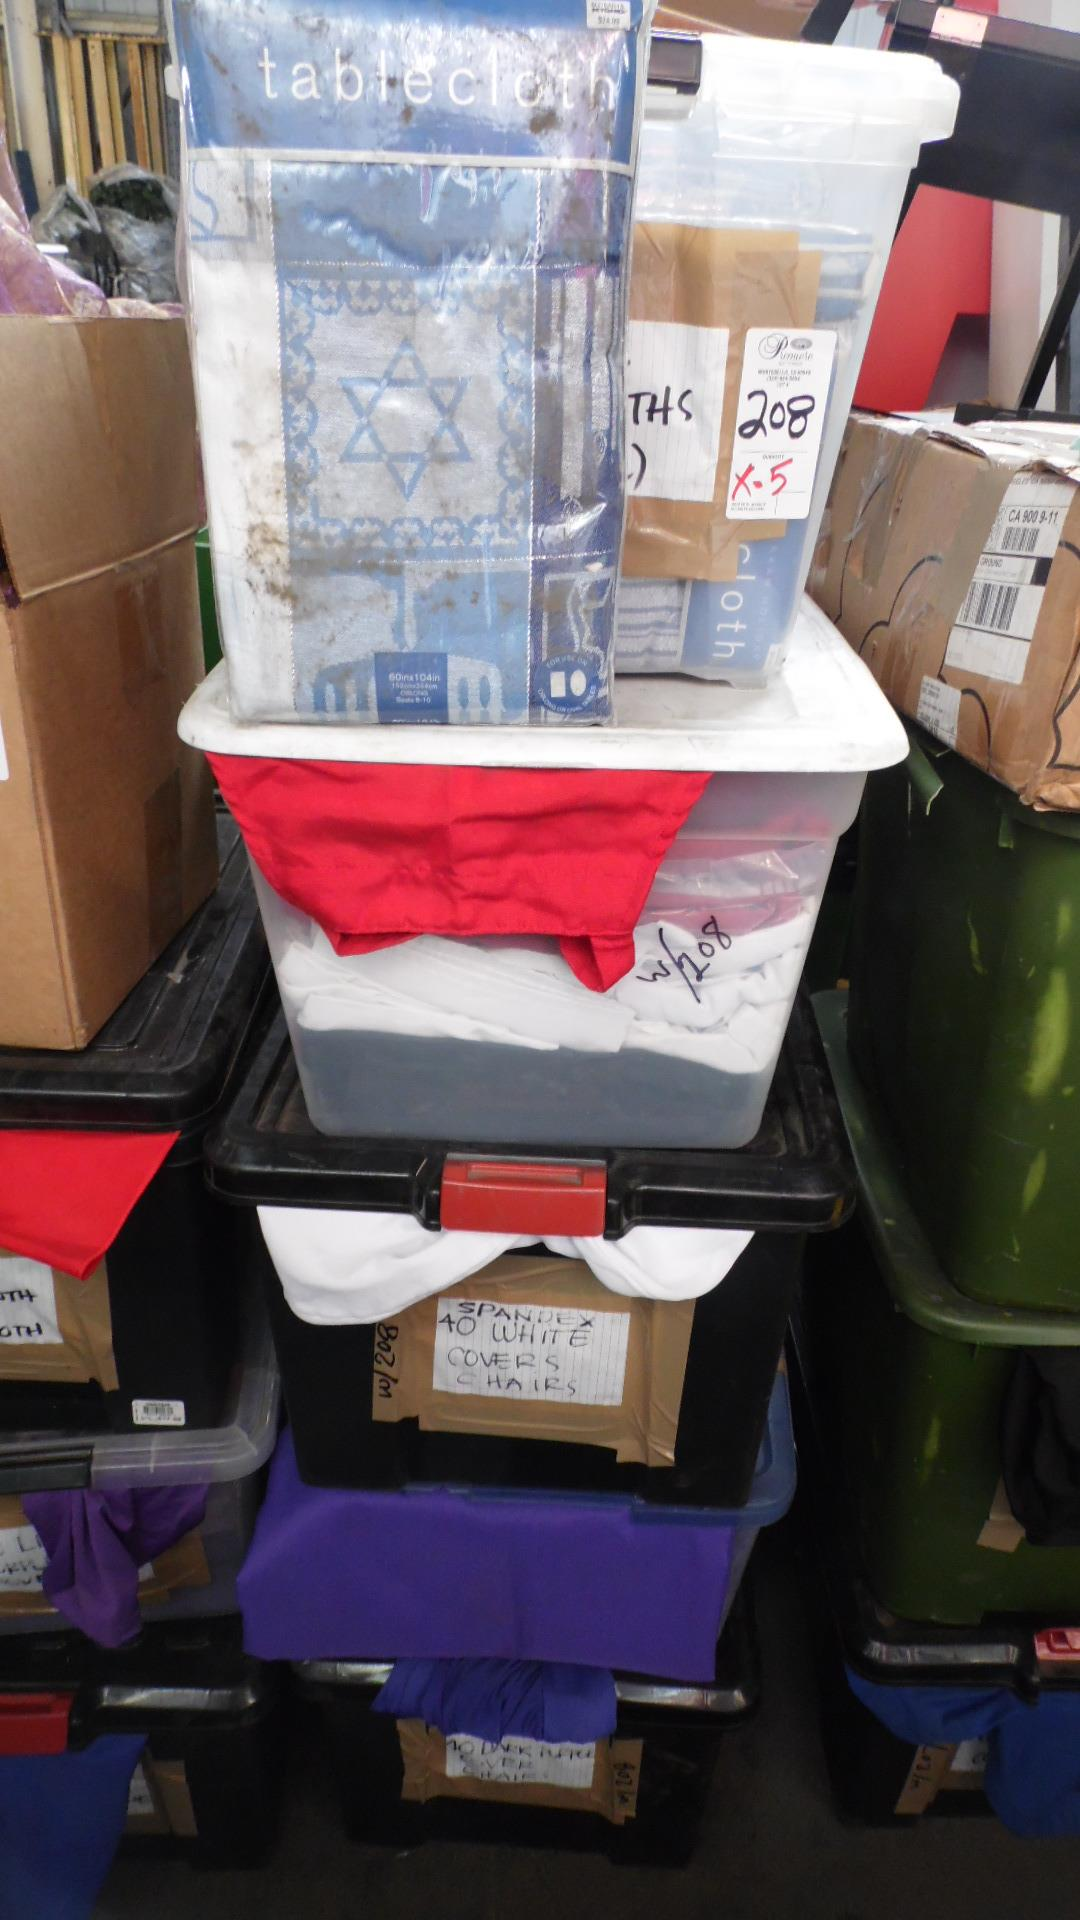 Lot 208 - CASES OF TABLE CLOTHS & COVERS